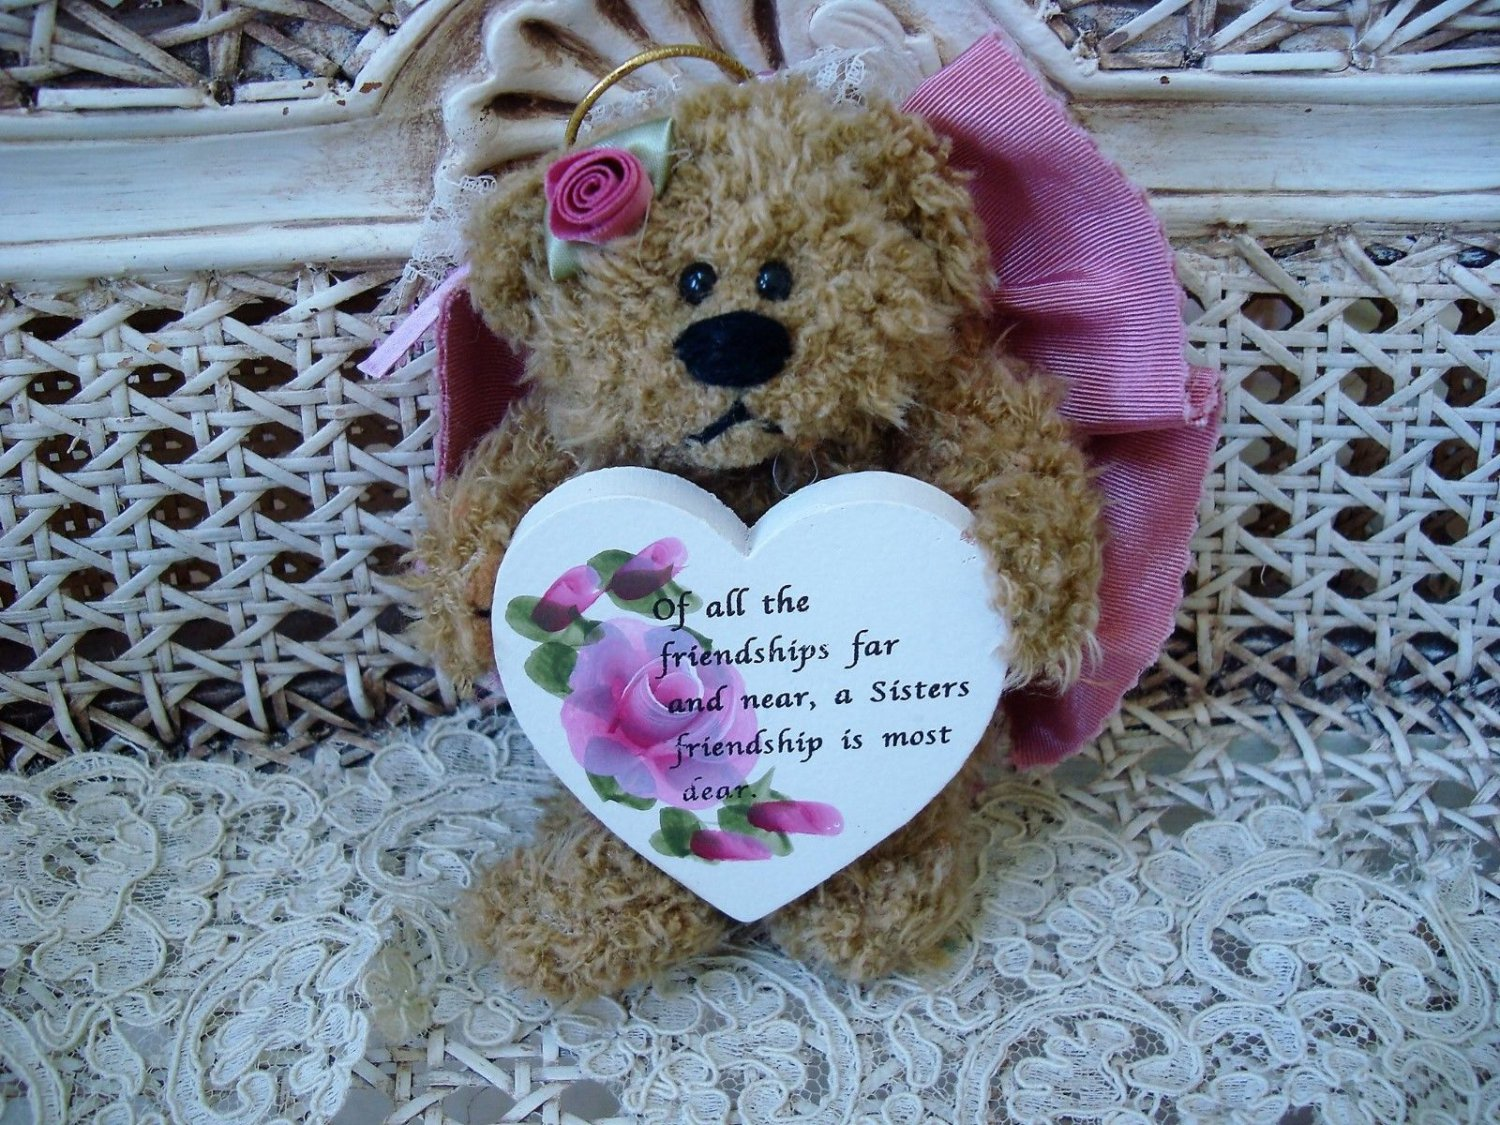 A SISTERS FRIENDSHIP IS MOST DEAR  MAUVE BEAR ORNAMENT WITH WOODEN HEART SO CUTE